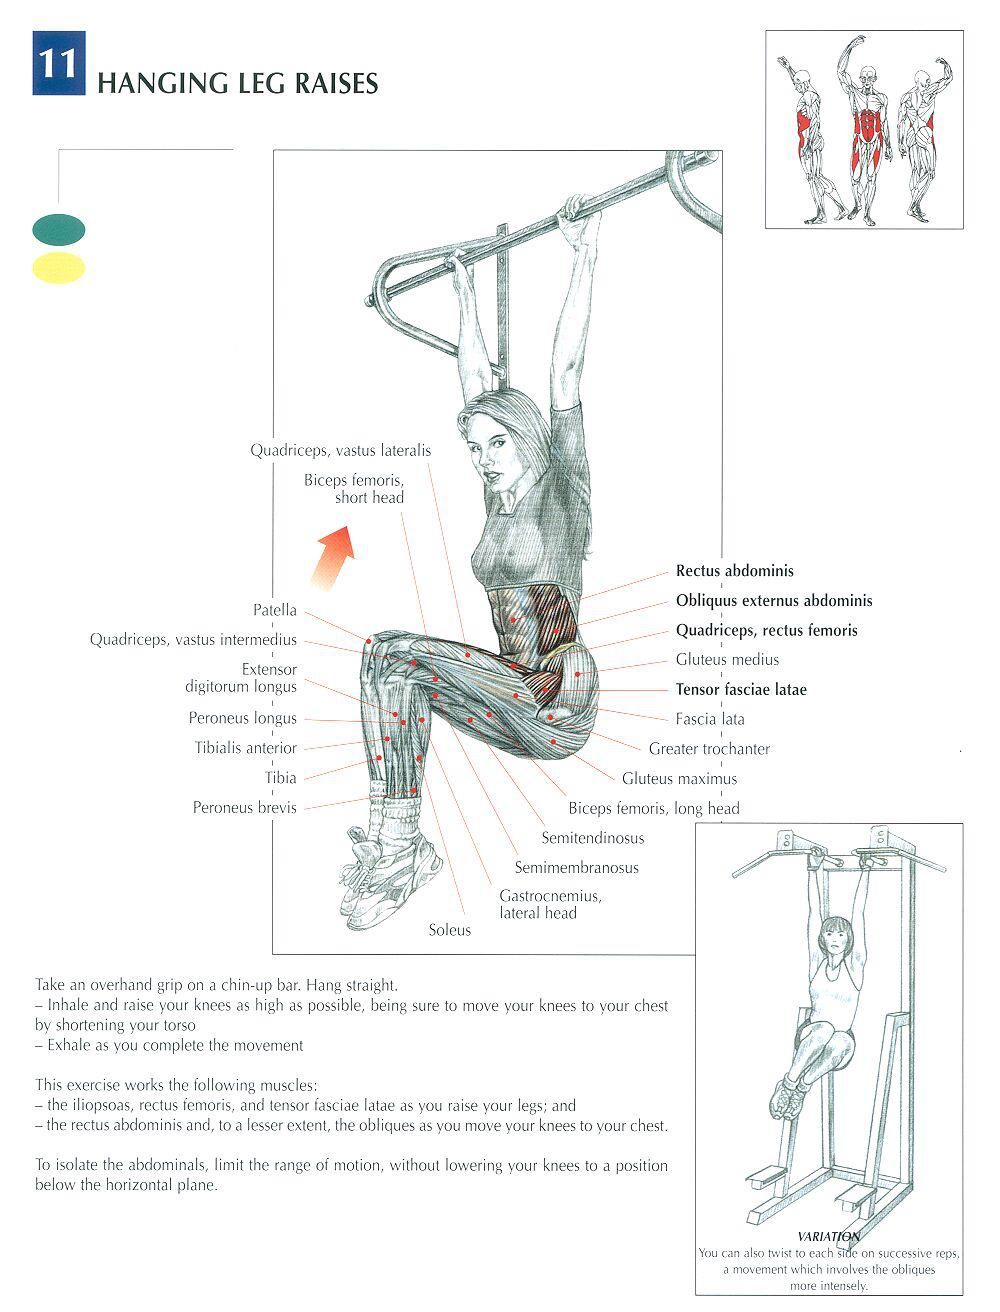 Hanging Leg Raises ♦ #health #fitness #exercises #diagrams #body #muscles #gym #bodybuilding #abs #abdomen